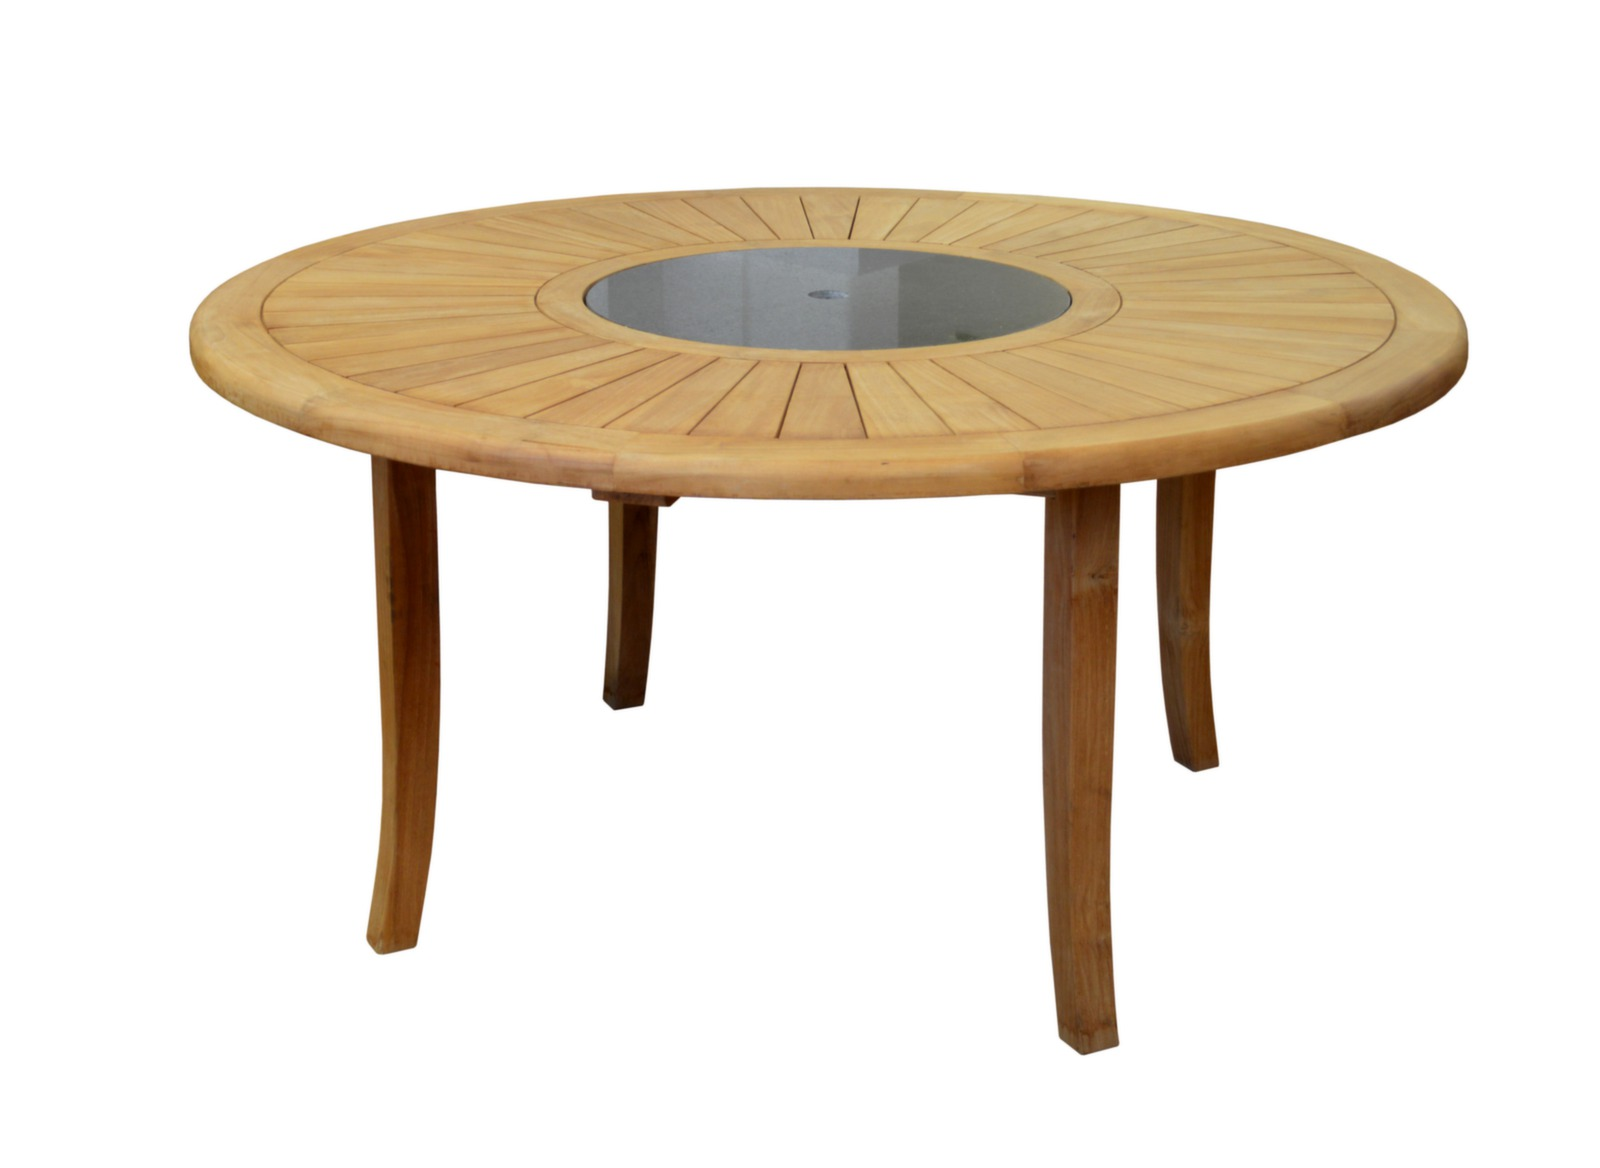 Beautiful table de jardin ronde en bois avec plateau for Table ronde rallonge